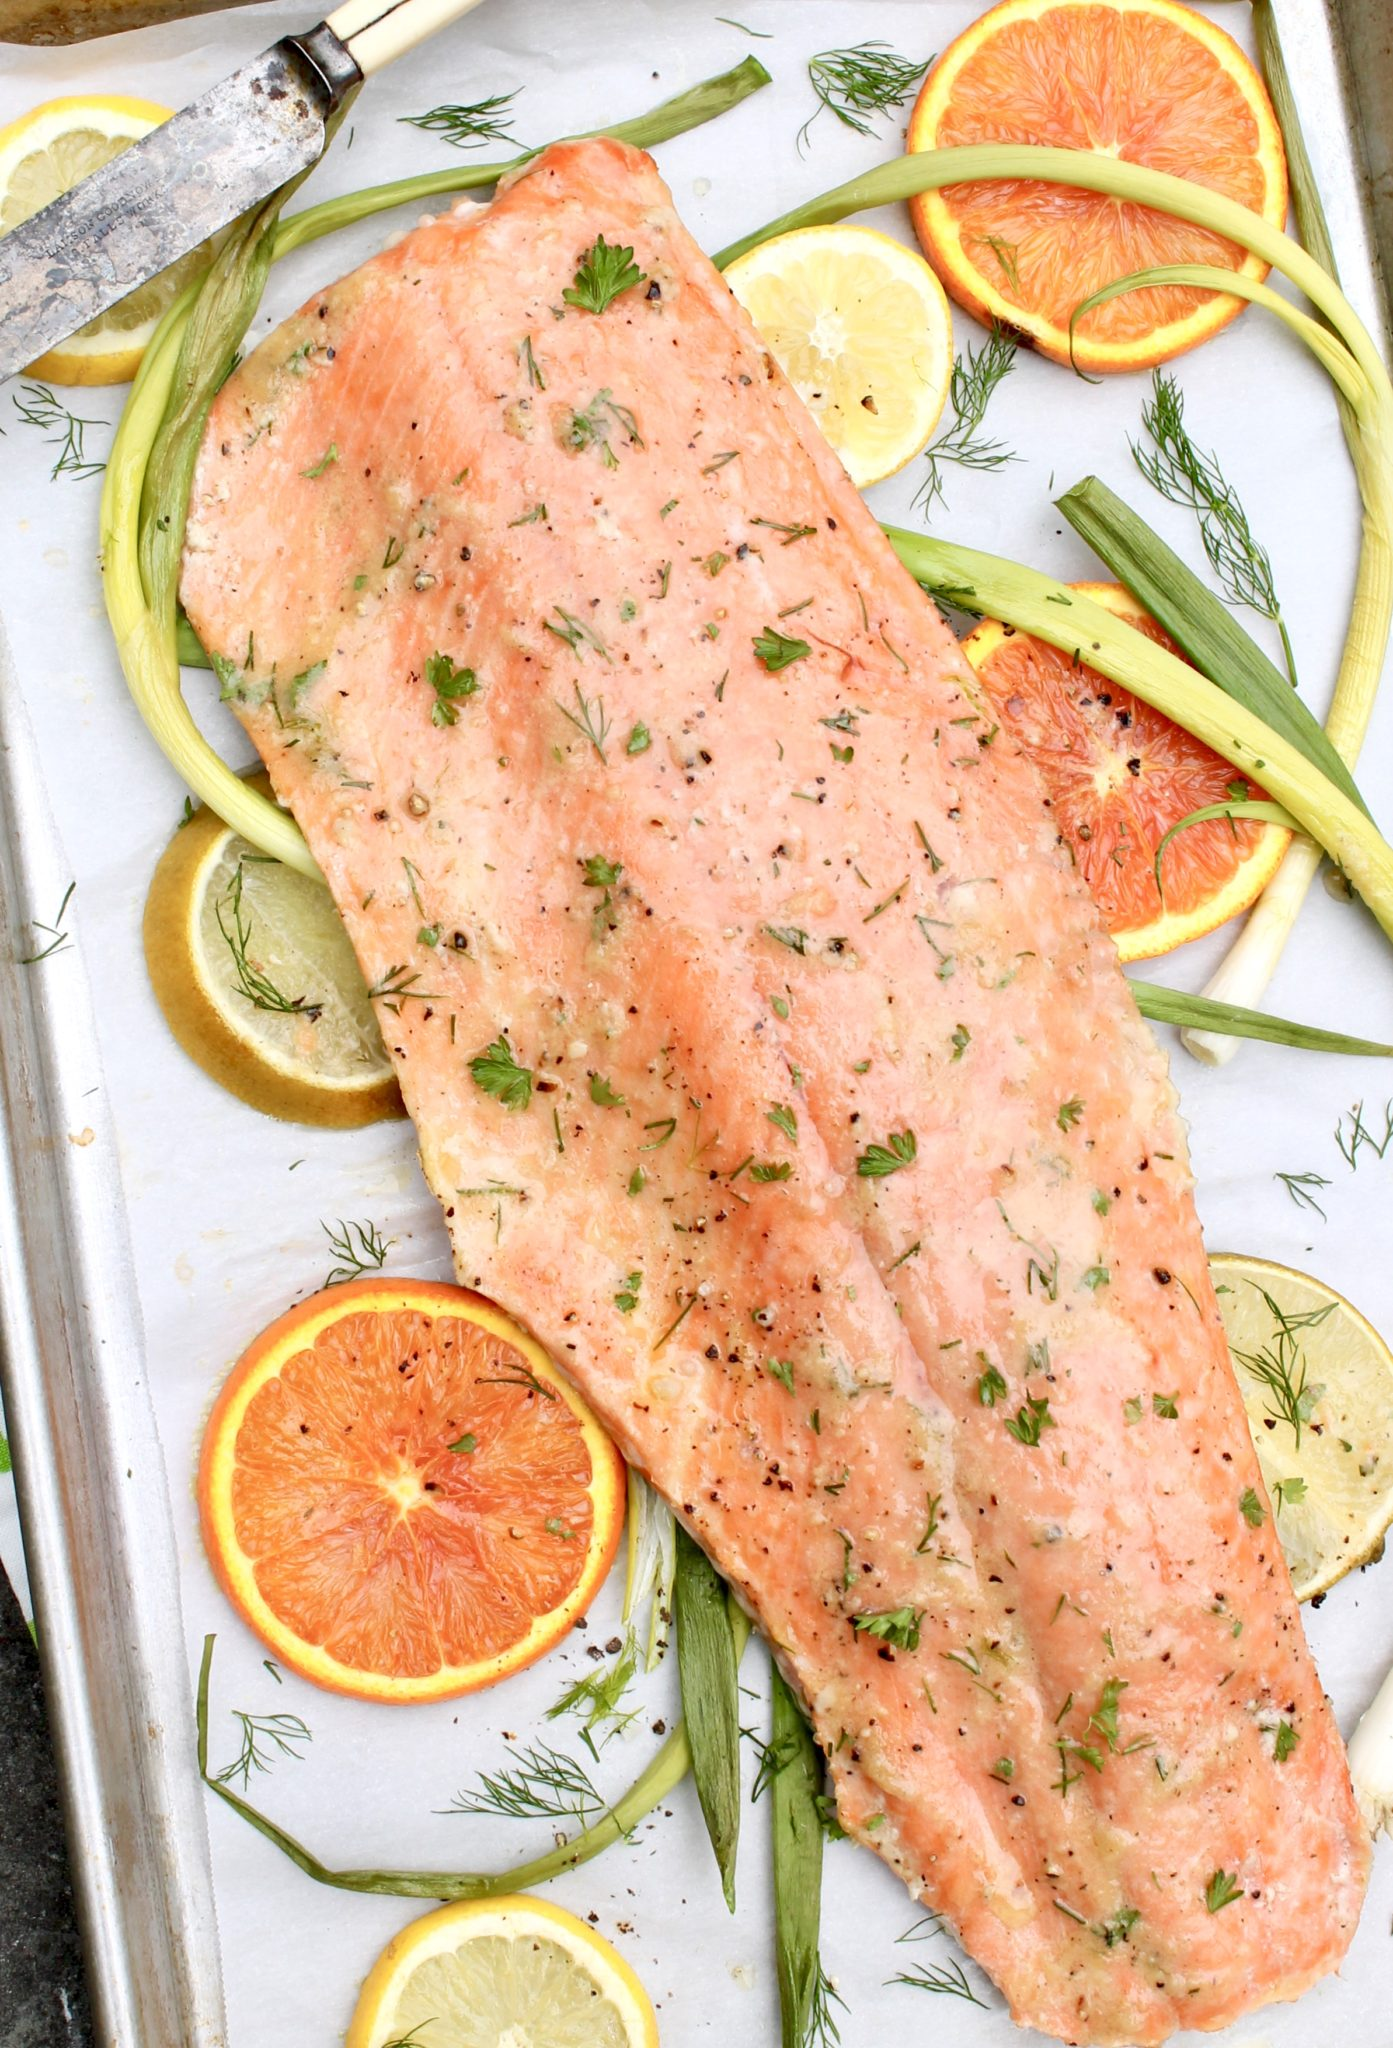 Slow Roasted Salmon-The need-to-know technique that assures perfectly cooked, tender salmon every single time. Plus you can use the approach with other favorite salmon recipes.